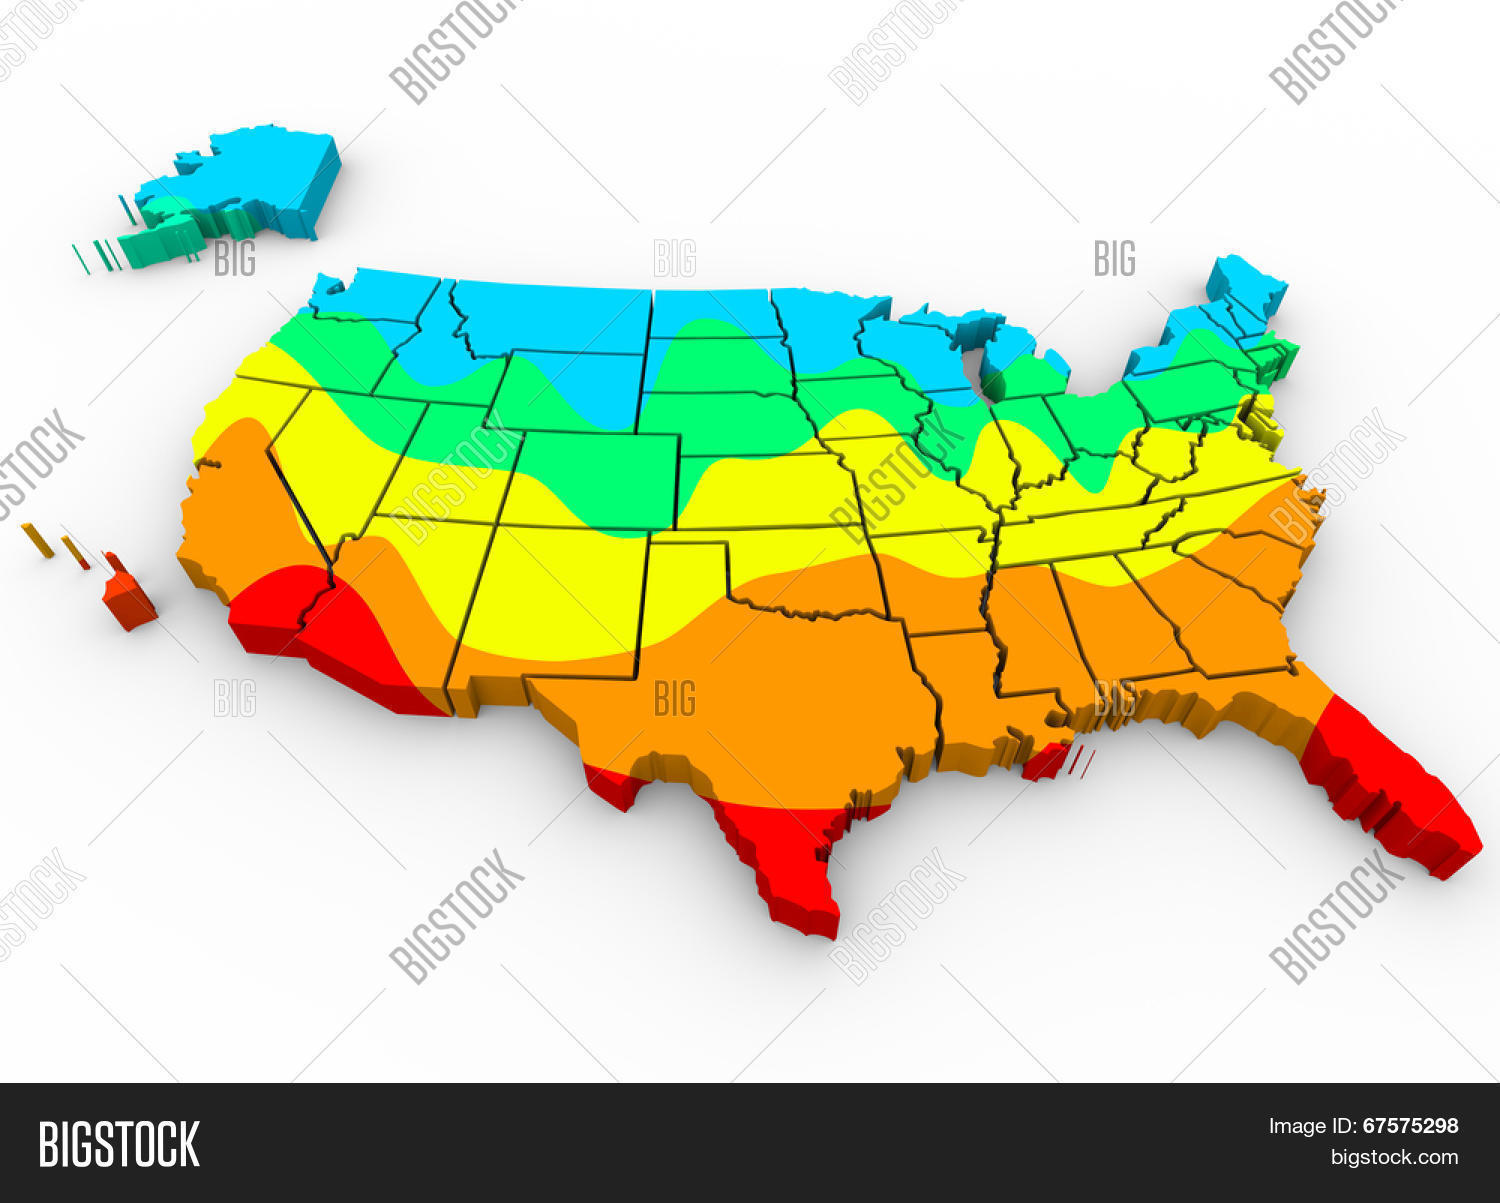 Usa Map With Regions.Map United States Image Photo Free Trial Bigstock